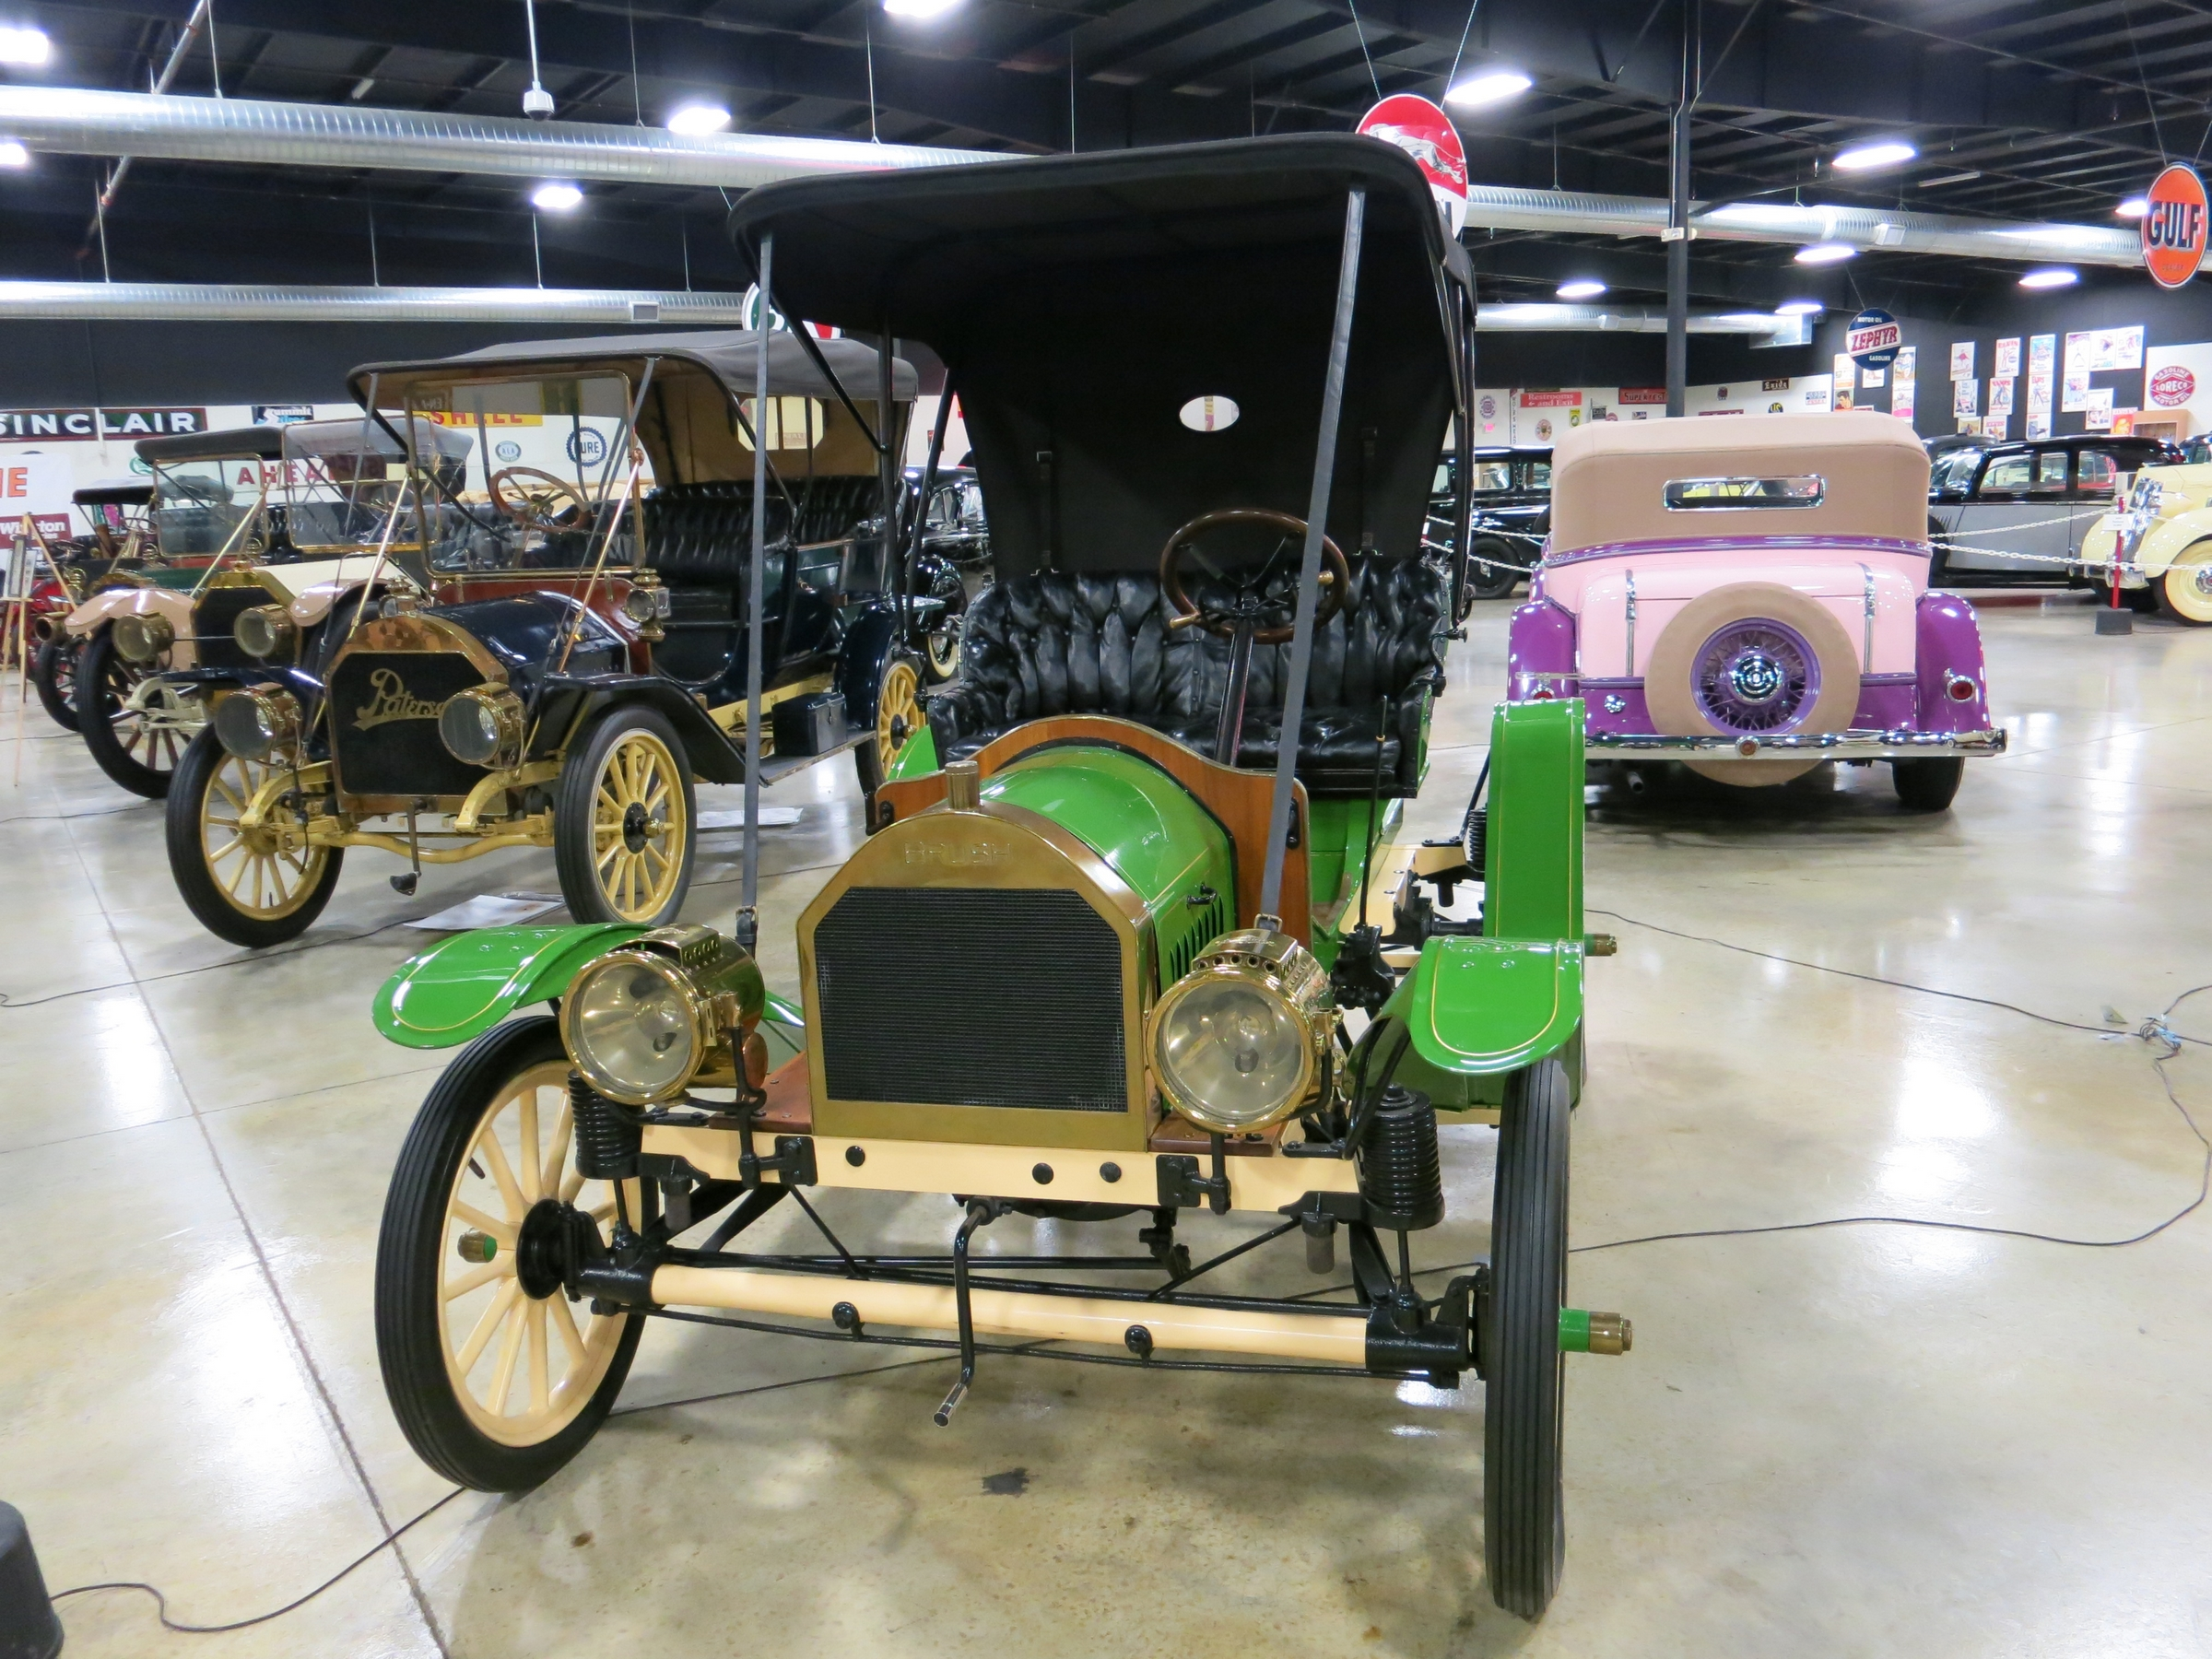 """Tupelo Automobile Museum, Tupelo, Mississippi"" by James Case from Philadelphia, Mississippi, U.S.A. - 1911 Brush. Licensed under CC BY 2.0 via Wikimedia Commons - https://commons.wikimedia.org/wiki/File:Tupelo_Automobile_Museum,_Tupelo,_Mississippi."